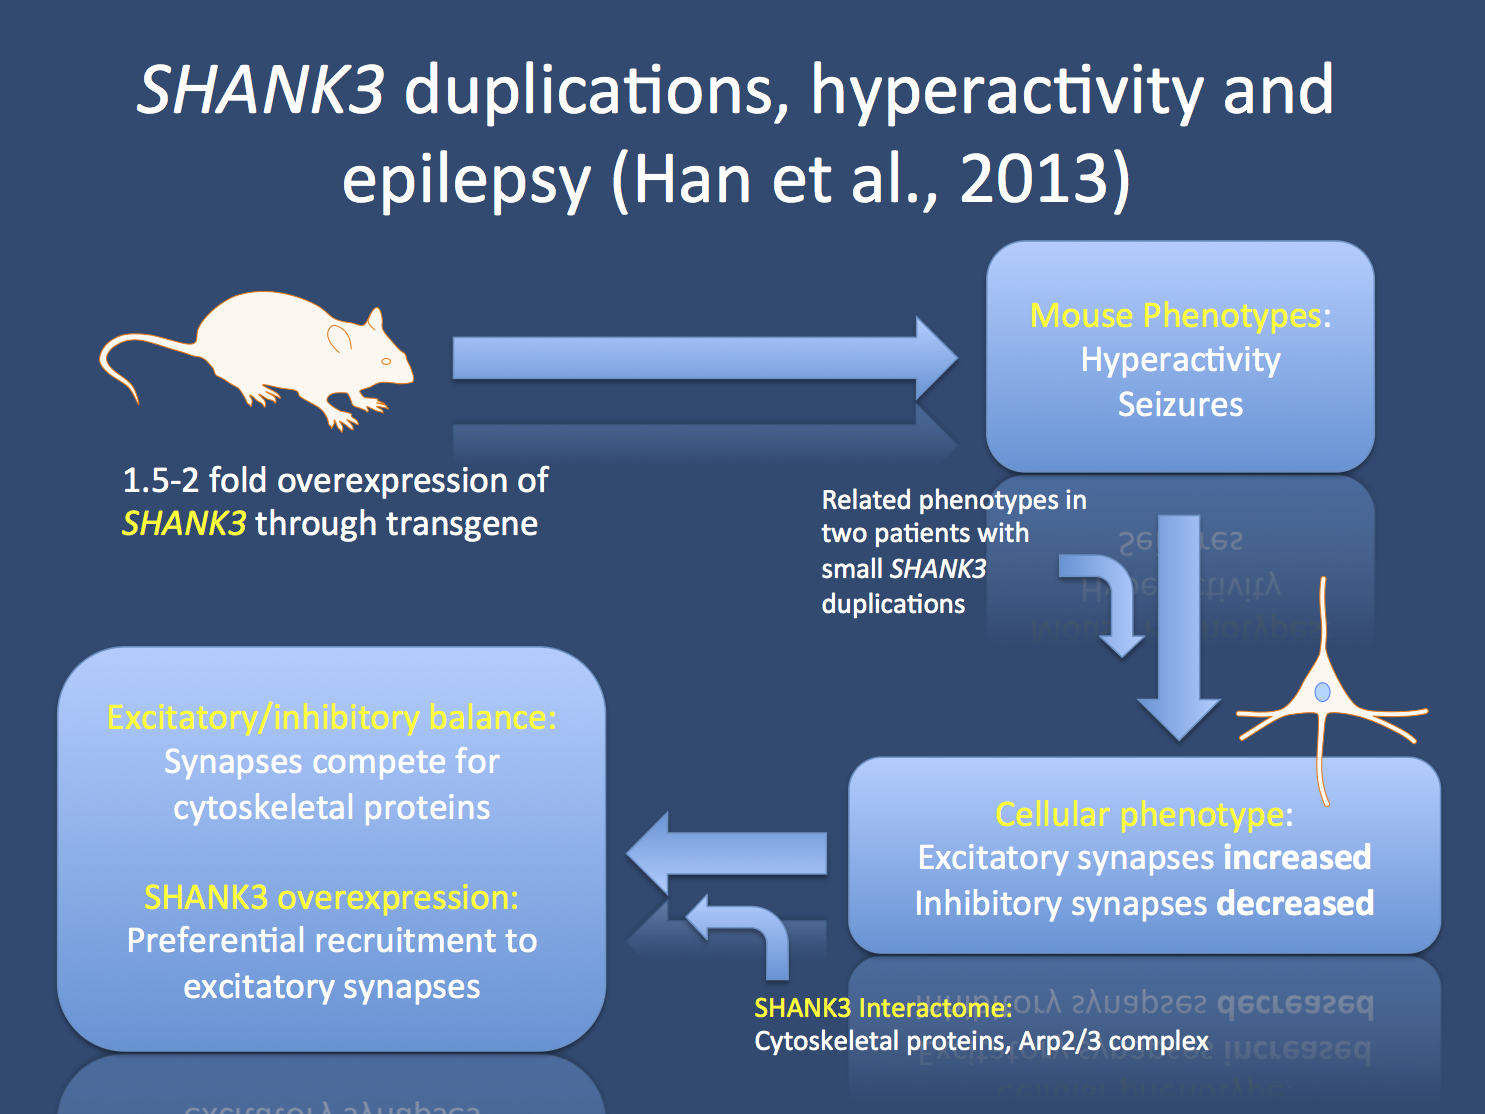 Study by Han and colleagues. Overexpression of SHANK3 resulted in an unanticipated phenotype consisting of seizures and hyperactivity. On a cellular level, the balance between excitatory and inhibitory synapses was shifted towards excitation, suggesting that SHANK3 levels serve as a molecular regulator for the level of excitation versus inhibition.